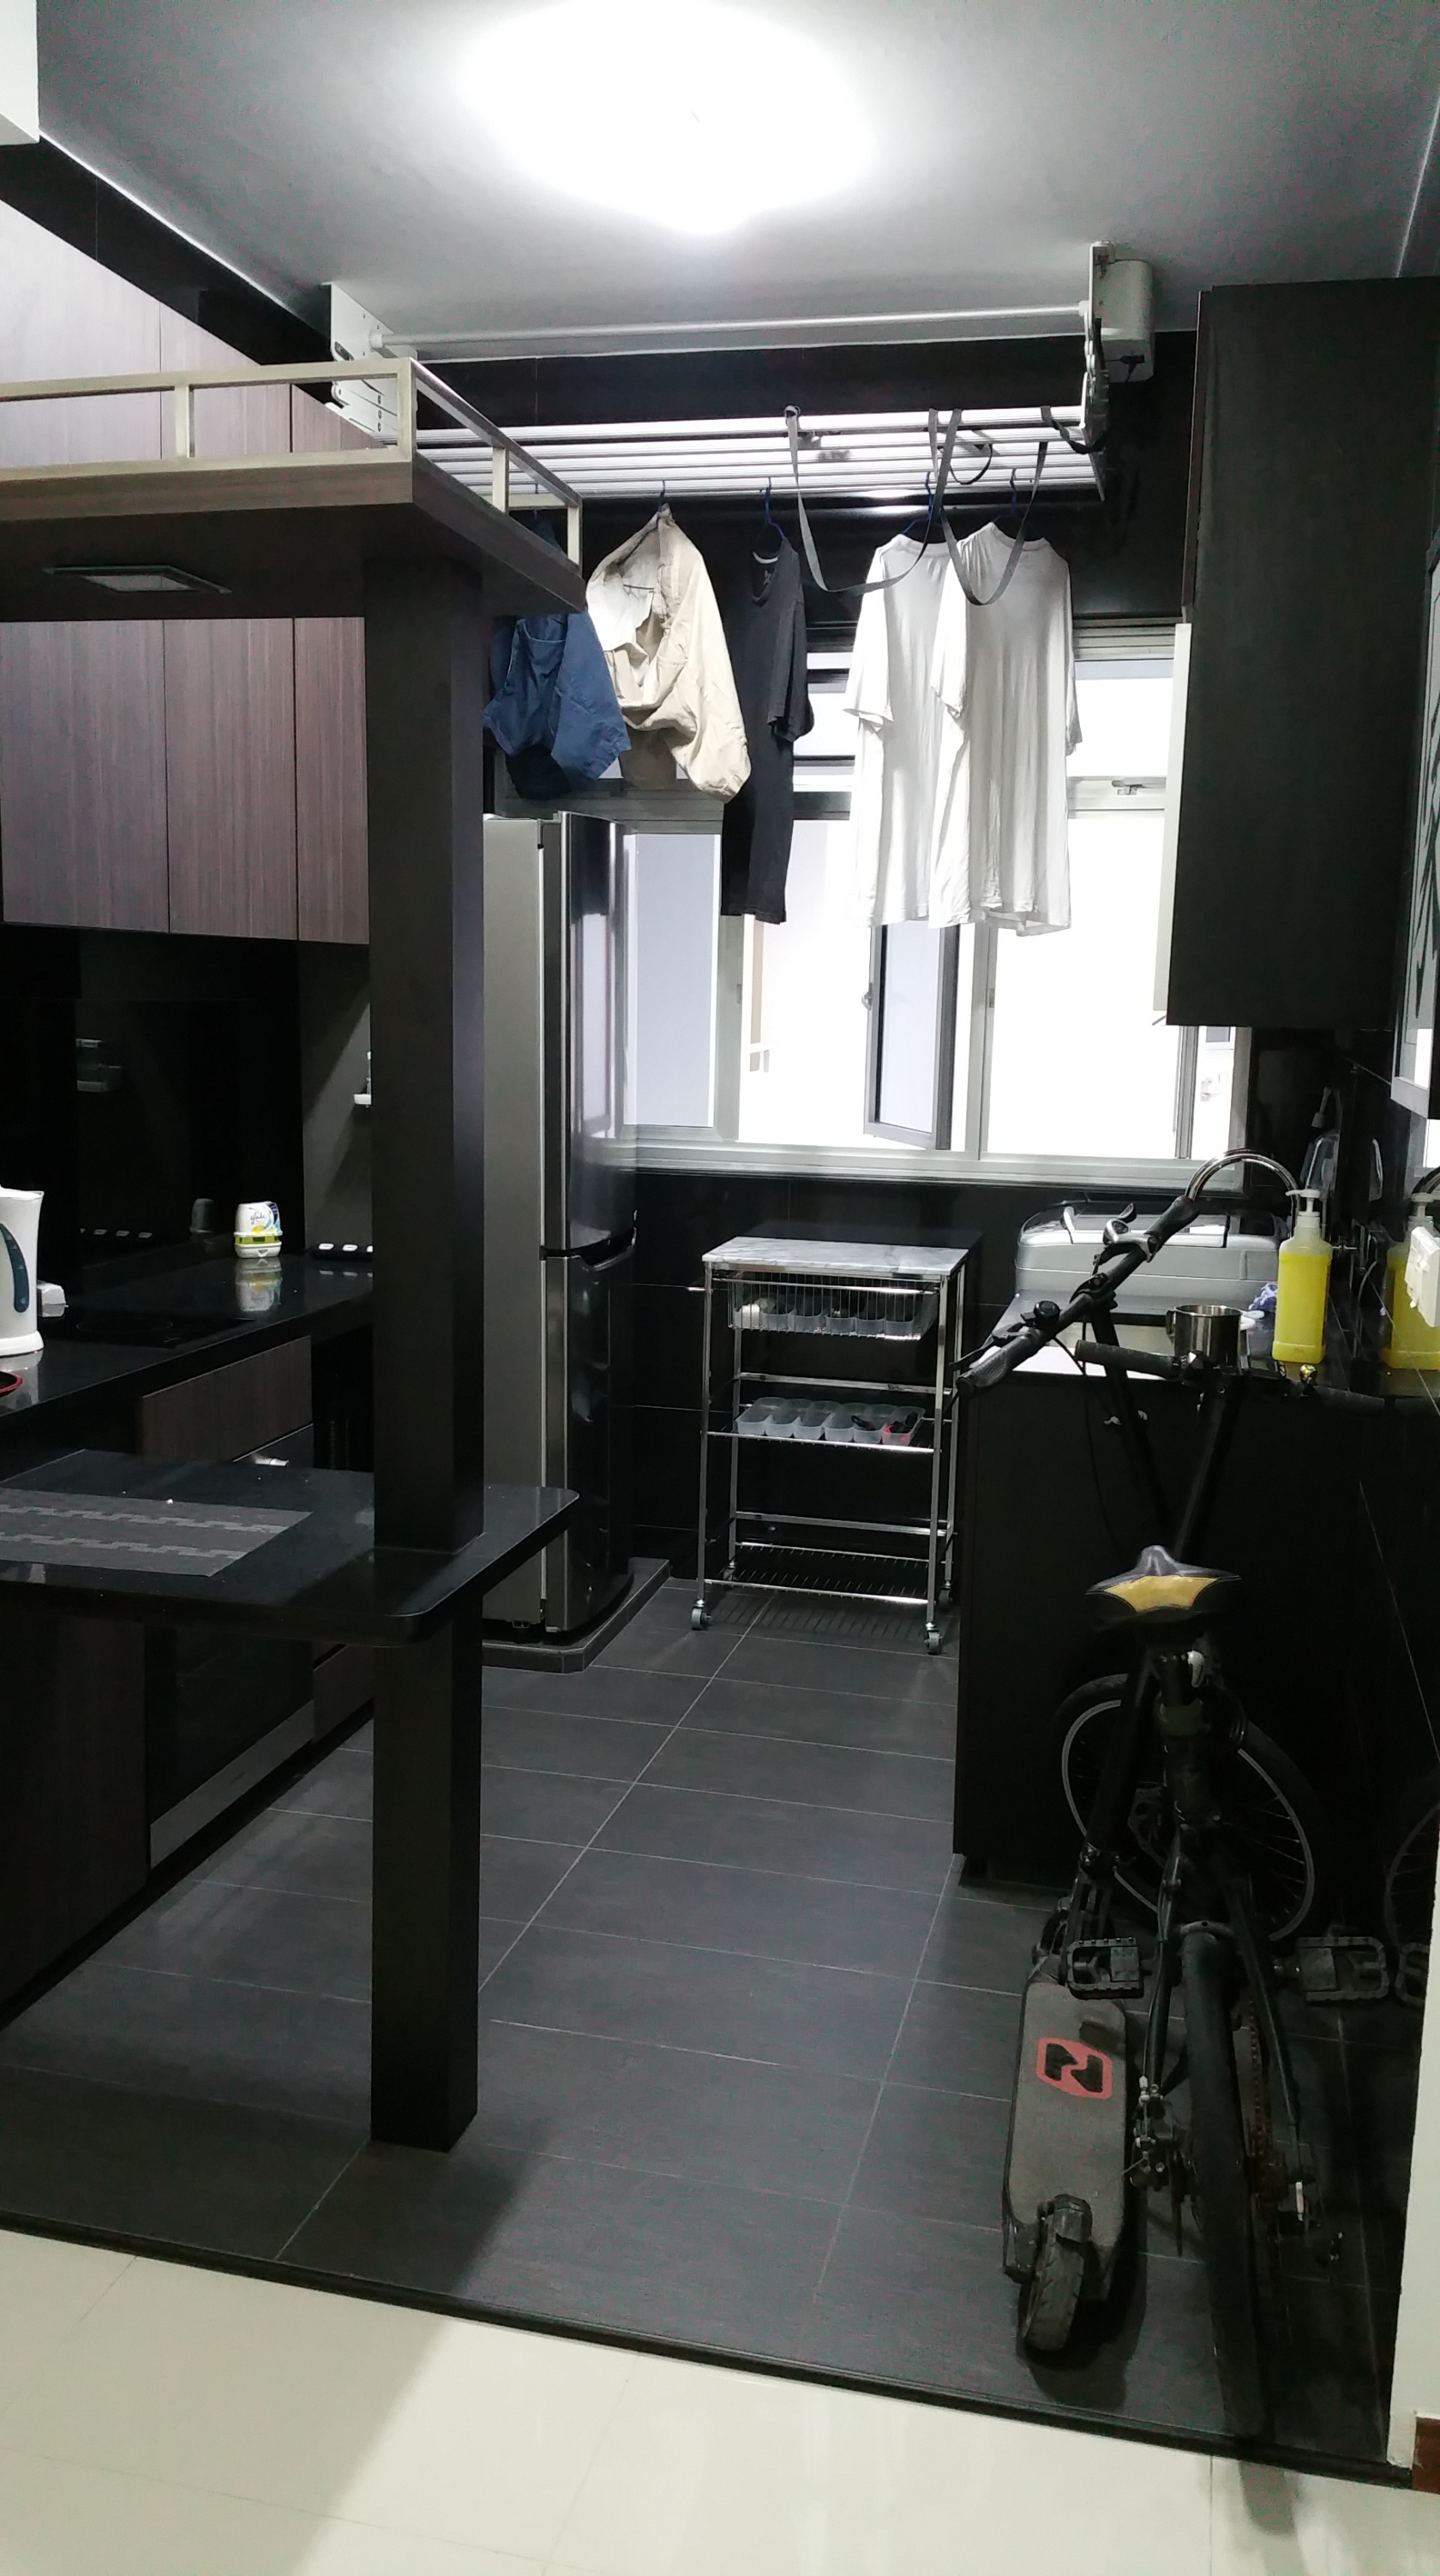 Hdb Two Room Reno: My Modern Zen 2-Room 35sqm (Type 1) HDB BTO Apartment